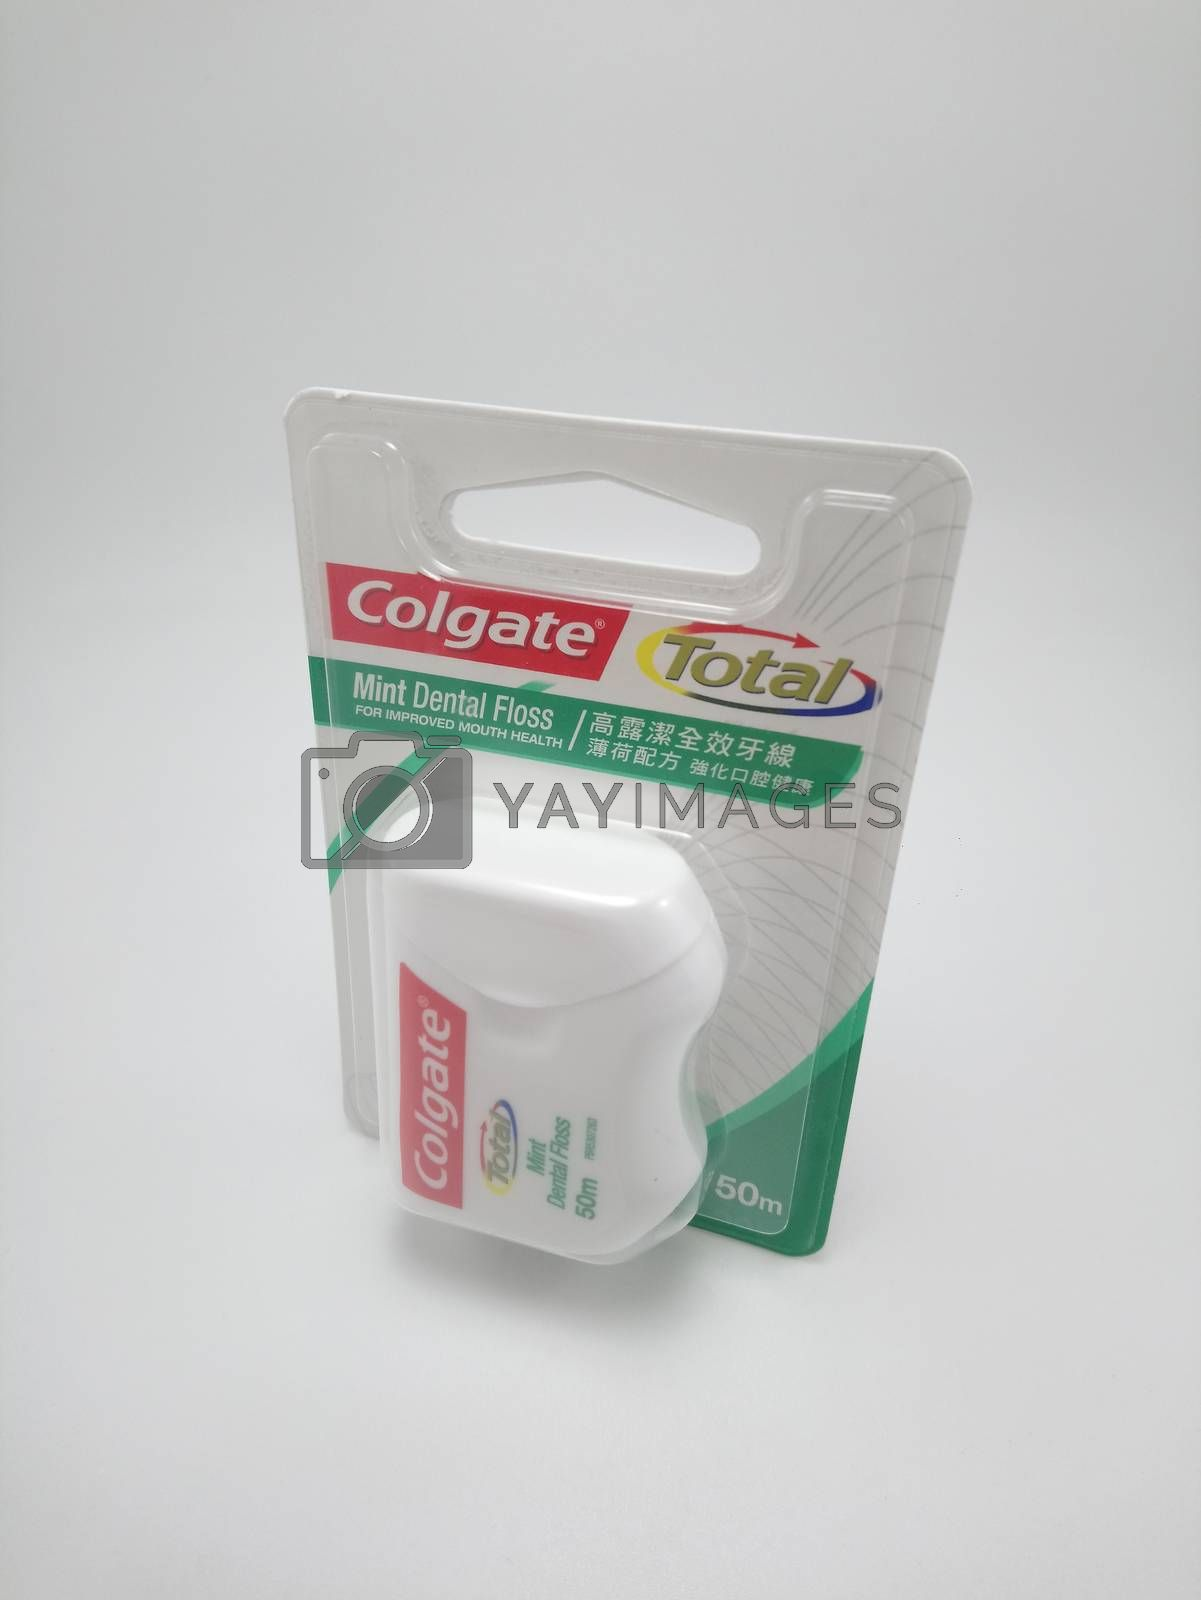 Colgate total mint dental floss in Manila, Philippines by imwaltersy